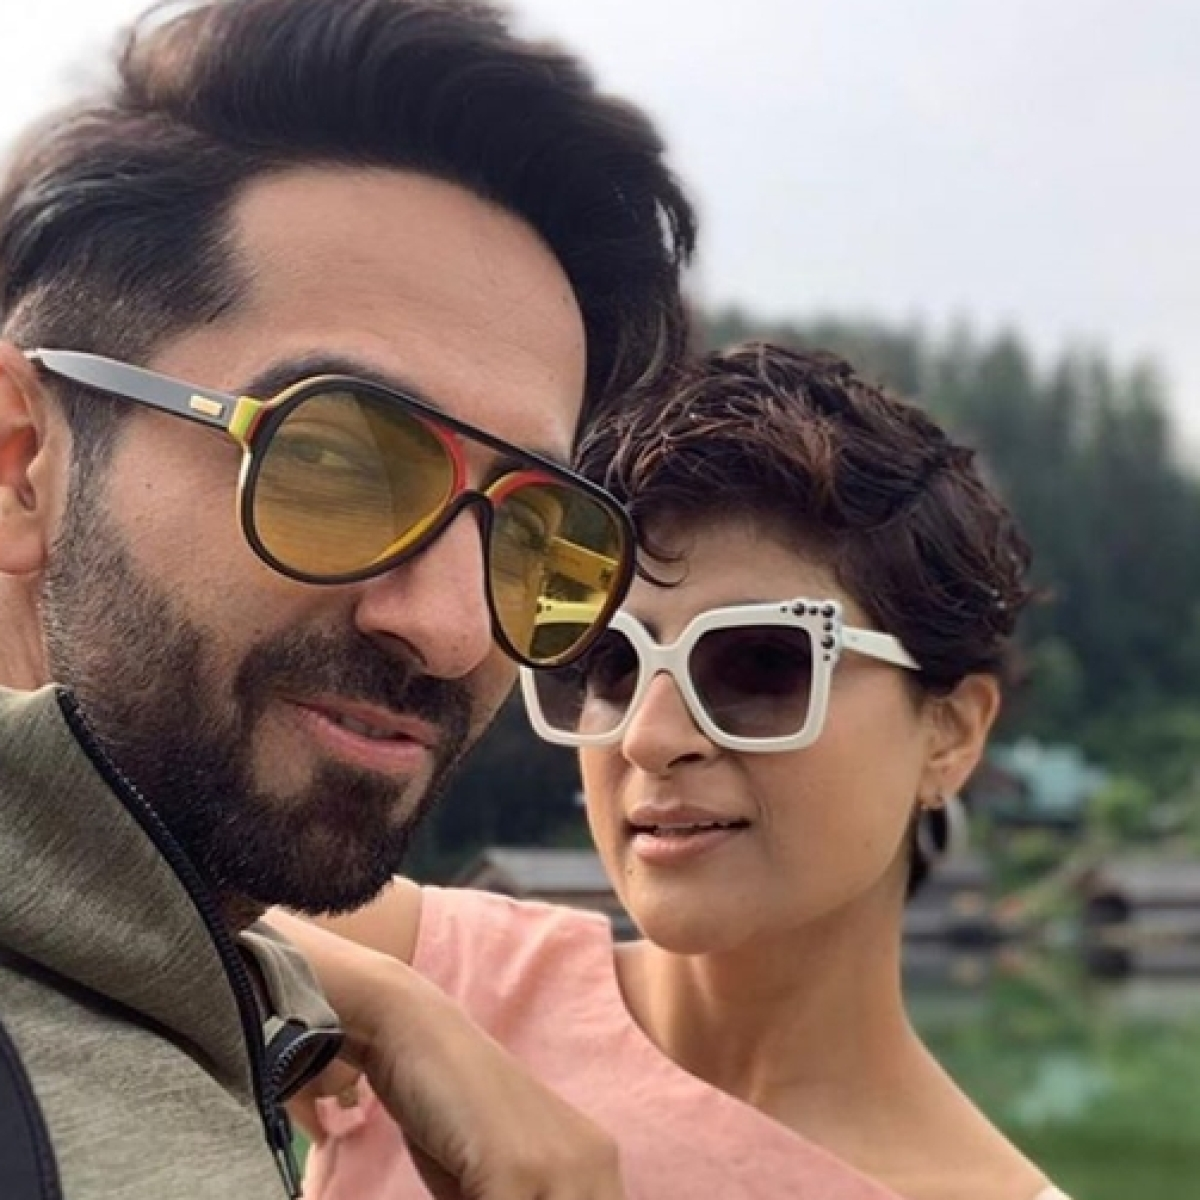 'We were preparing for our board exams, at 1.48 AM I'd confessed my feelings': Ayushmann on 19 years with Tahira